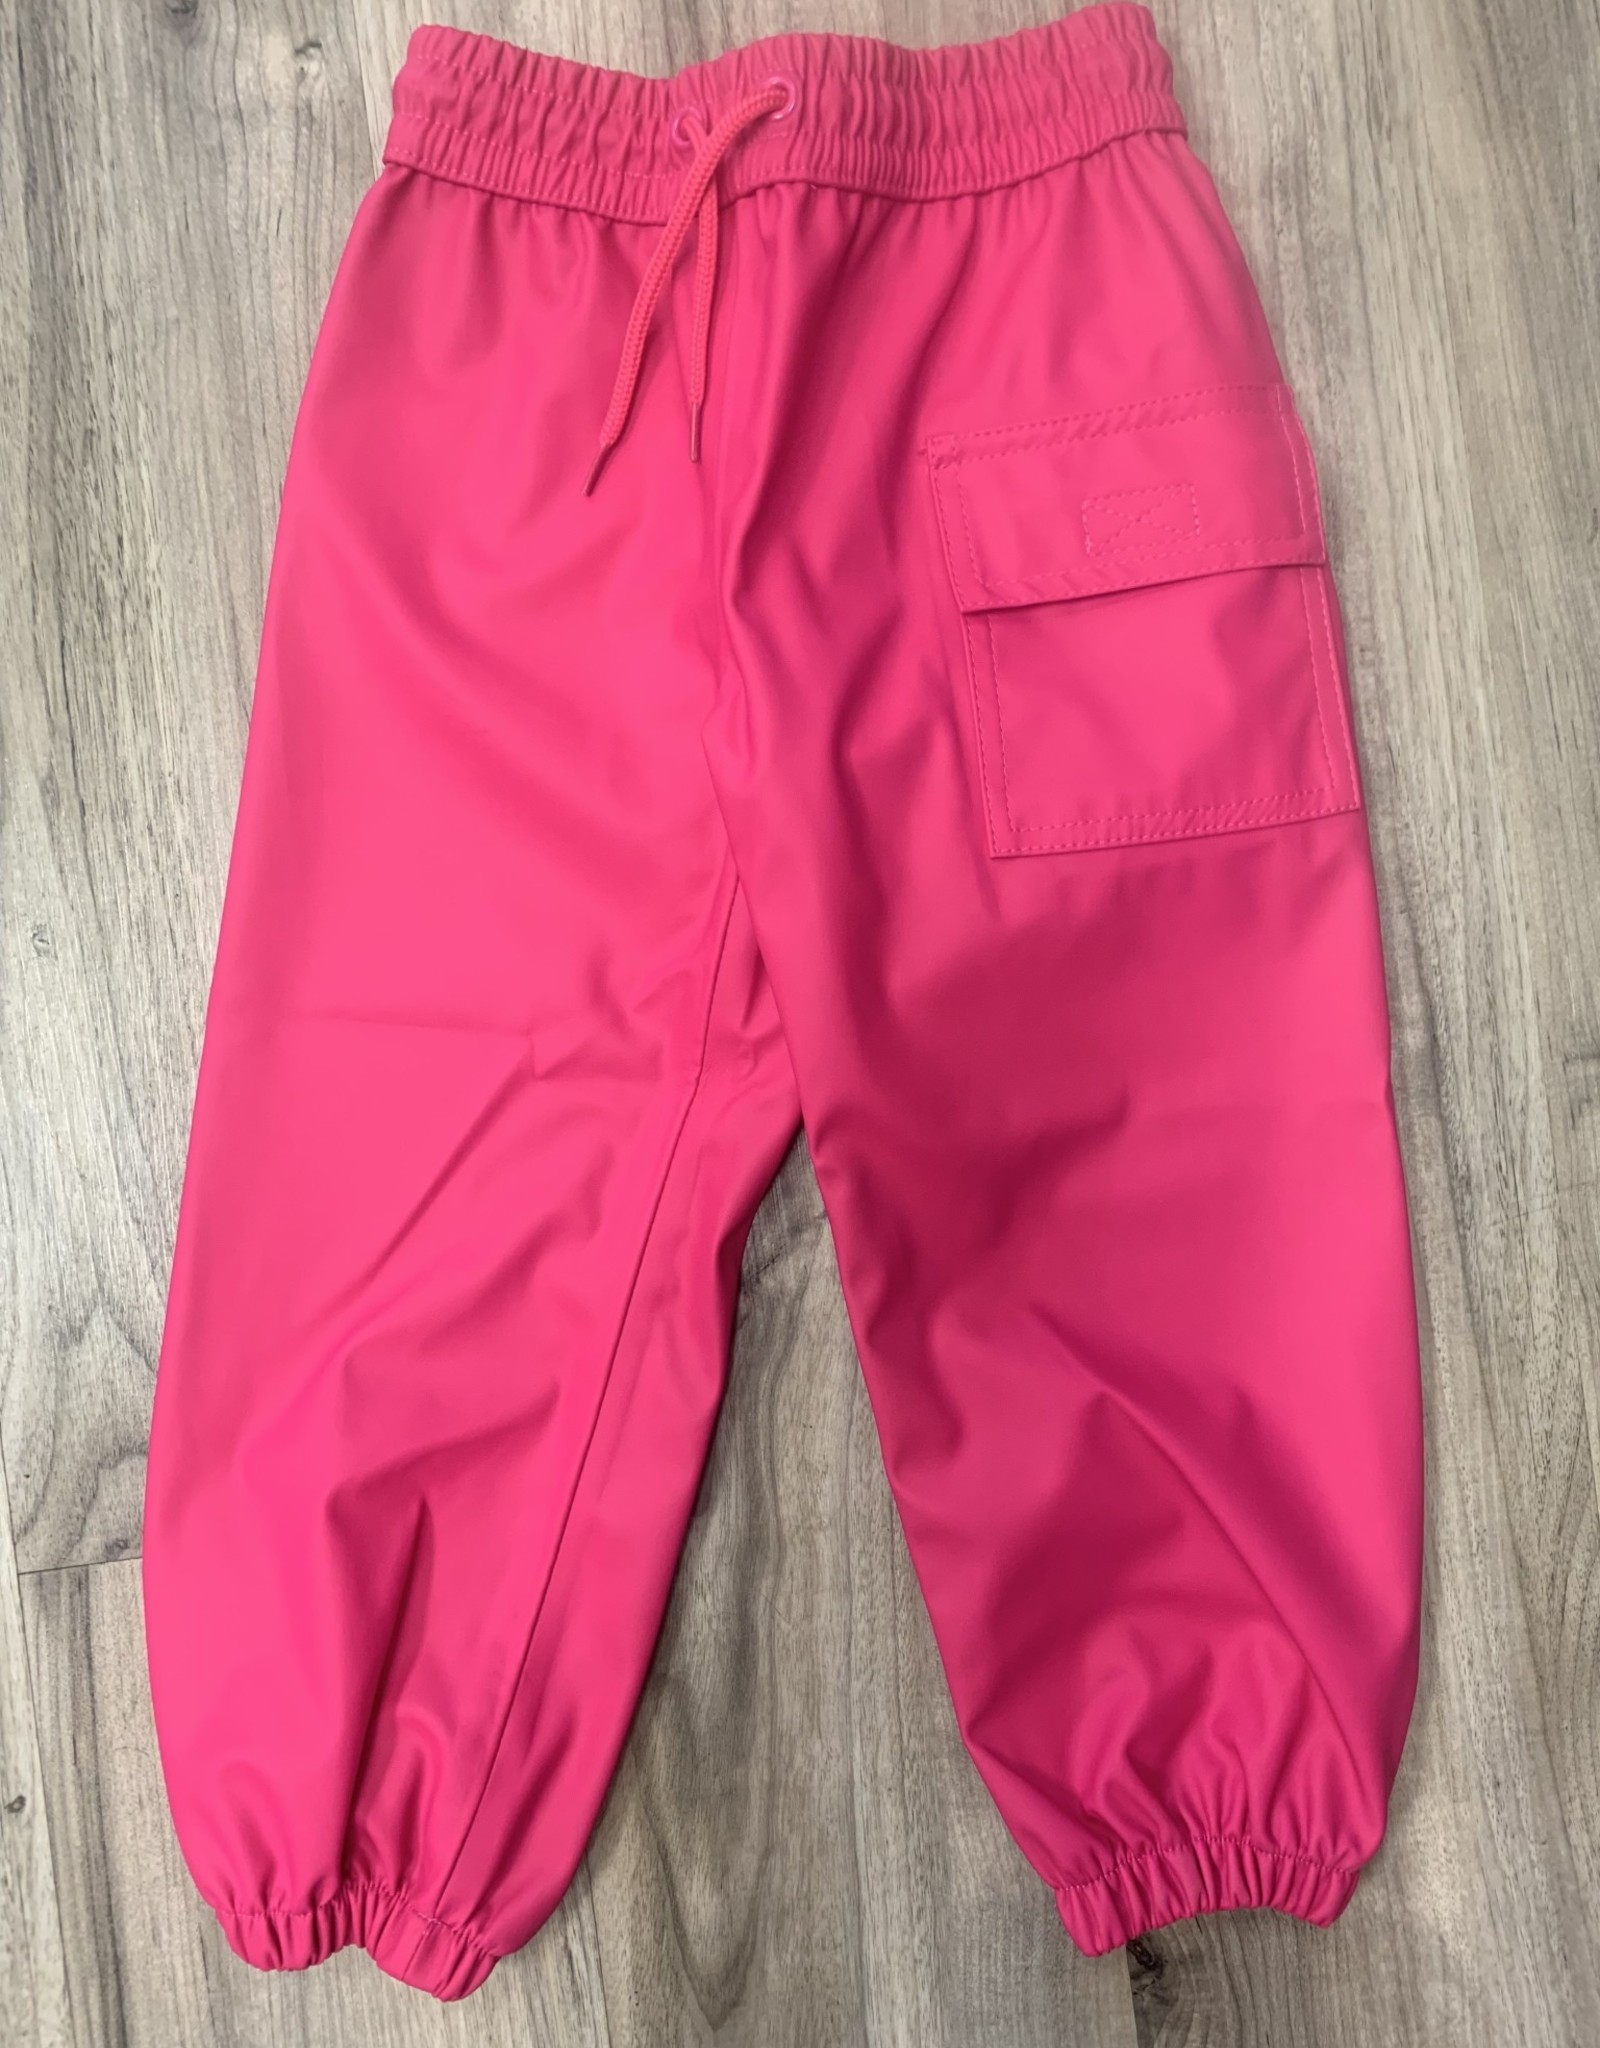 Hatley Splash pants